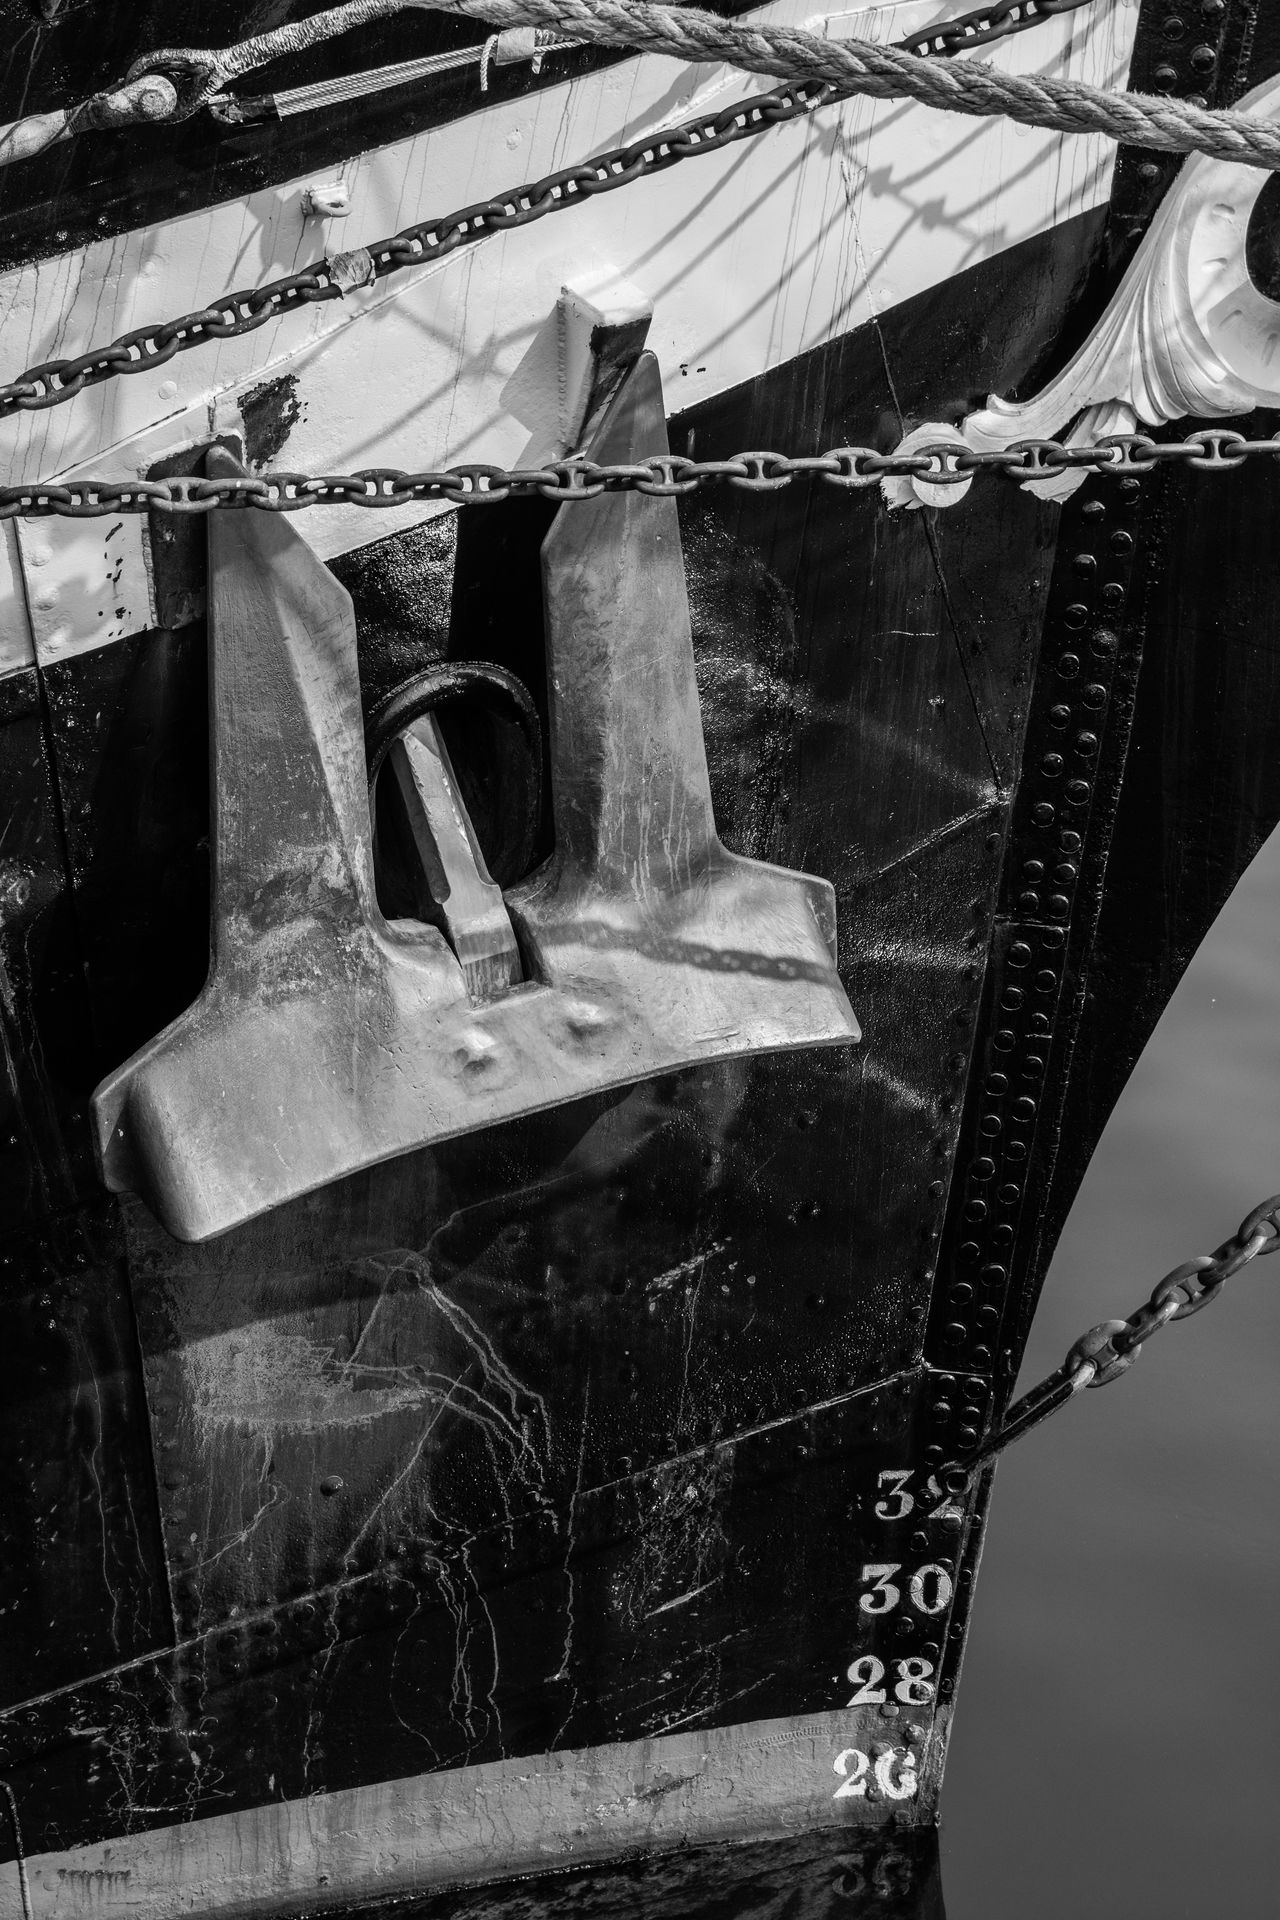 Anchor Black And White Calm Sea Chains Day Docks Iron Maritime Metal Monochrome Moored Nautical Nautical Vessel No People Outdoors Port Sea Ship Steel Stern Tall Ship Transportation Waterline